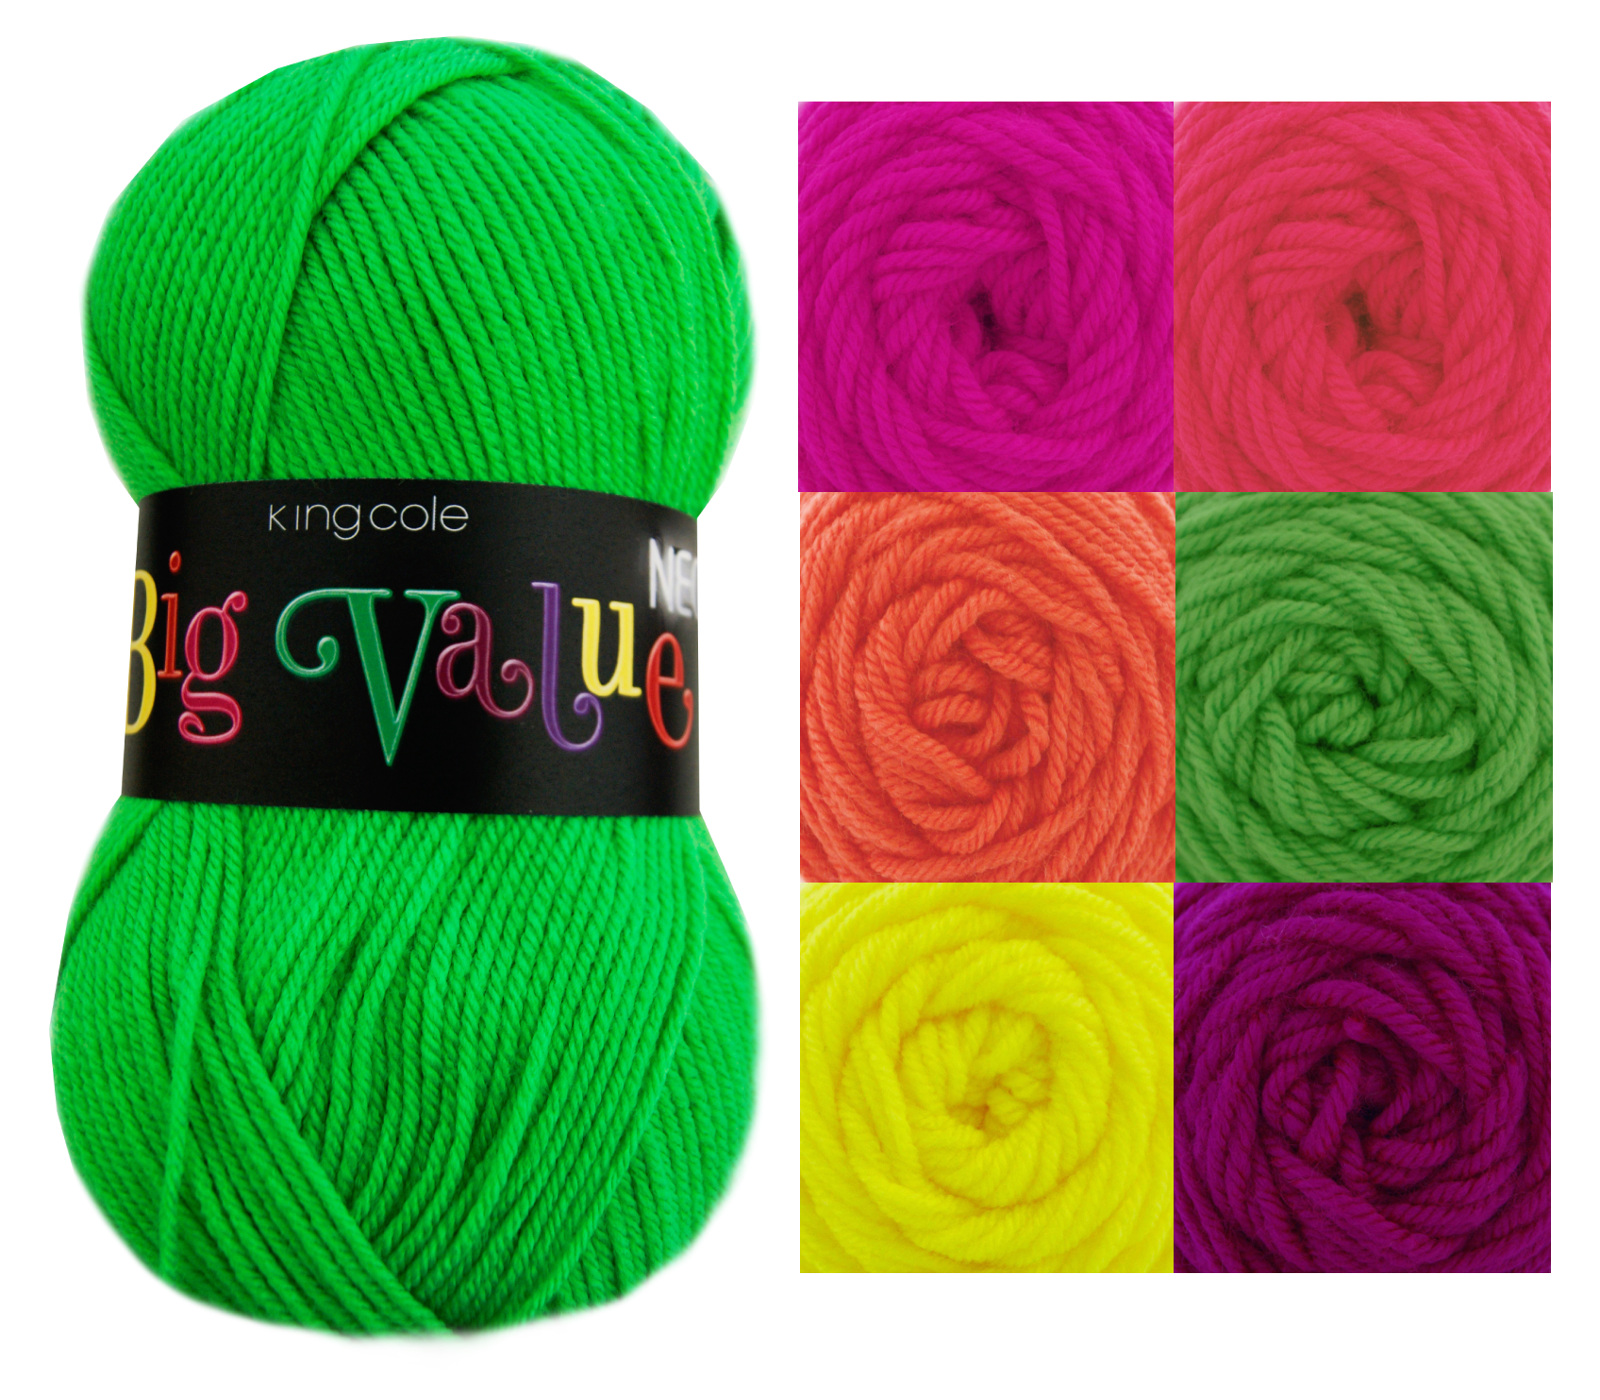 Acrylic Yarn : ... Value Neon Double Knitting Yarn 100% Acrylic DK Wool 100g Ball eBay